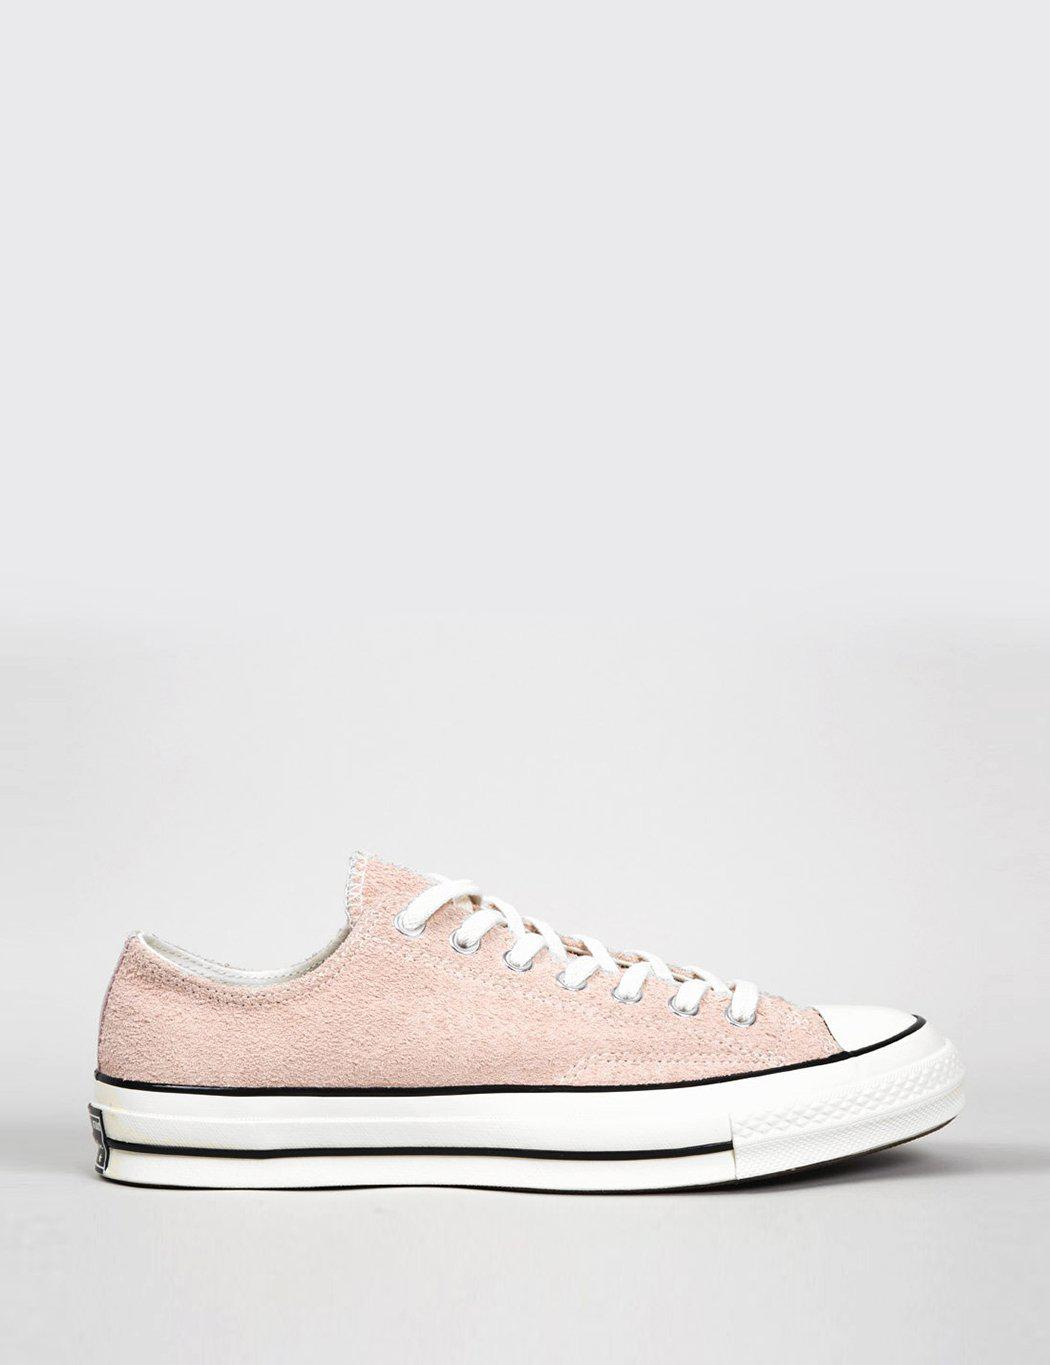 Lyst - Converse 70 s Chuck Taylor Low (canvas) in Pink for Men bf2a33947